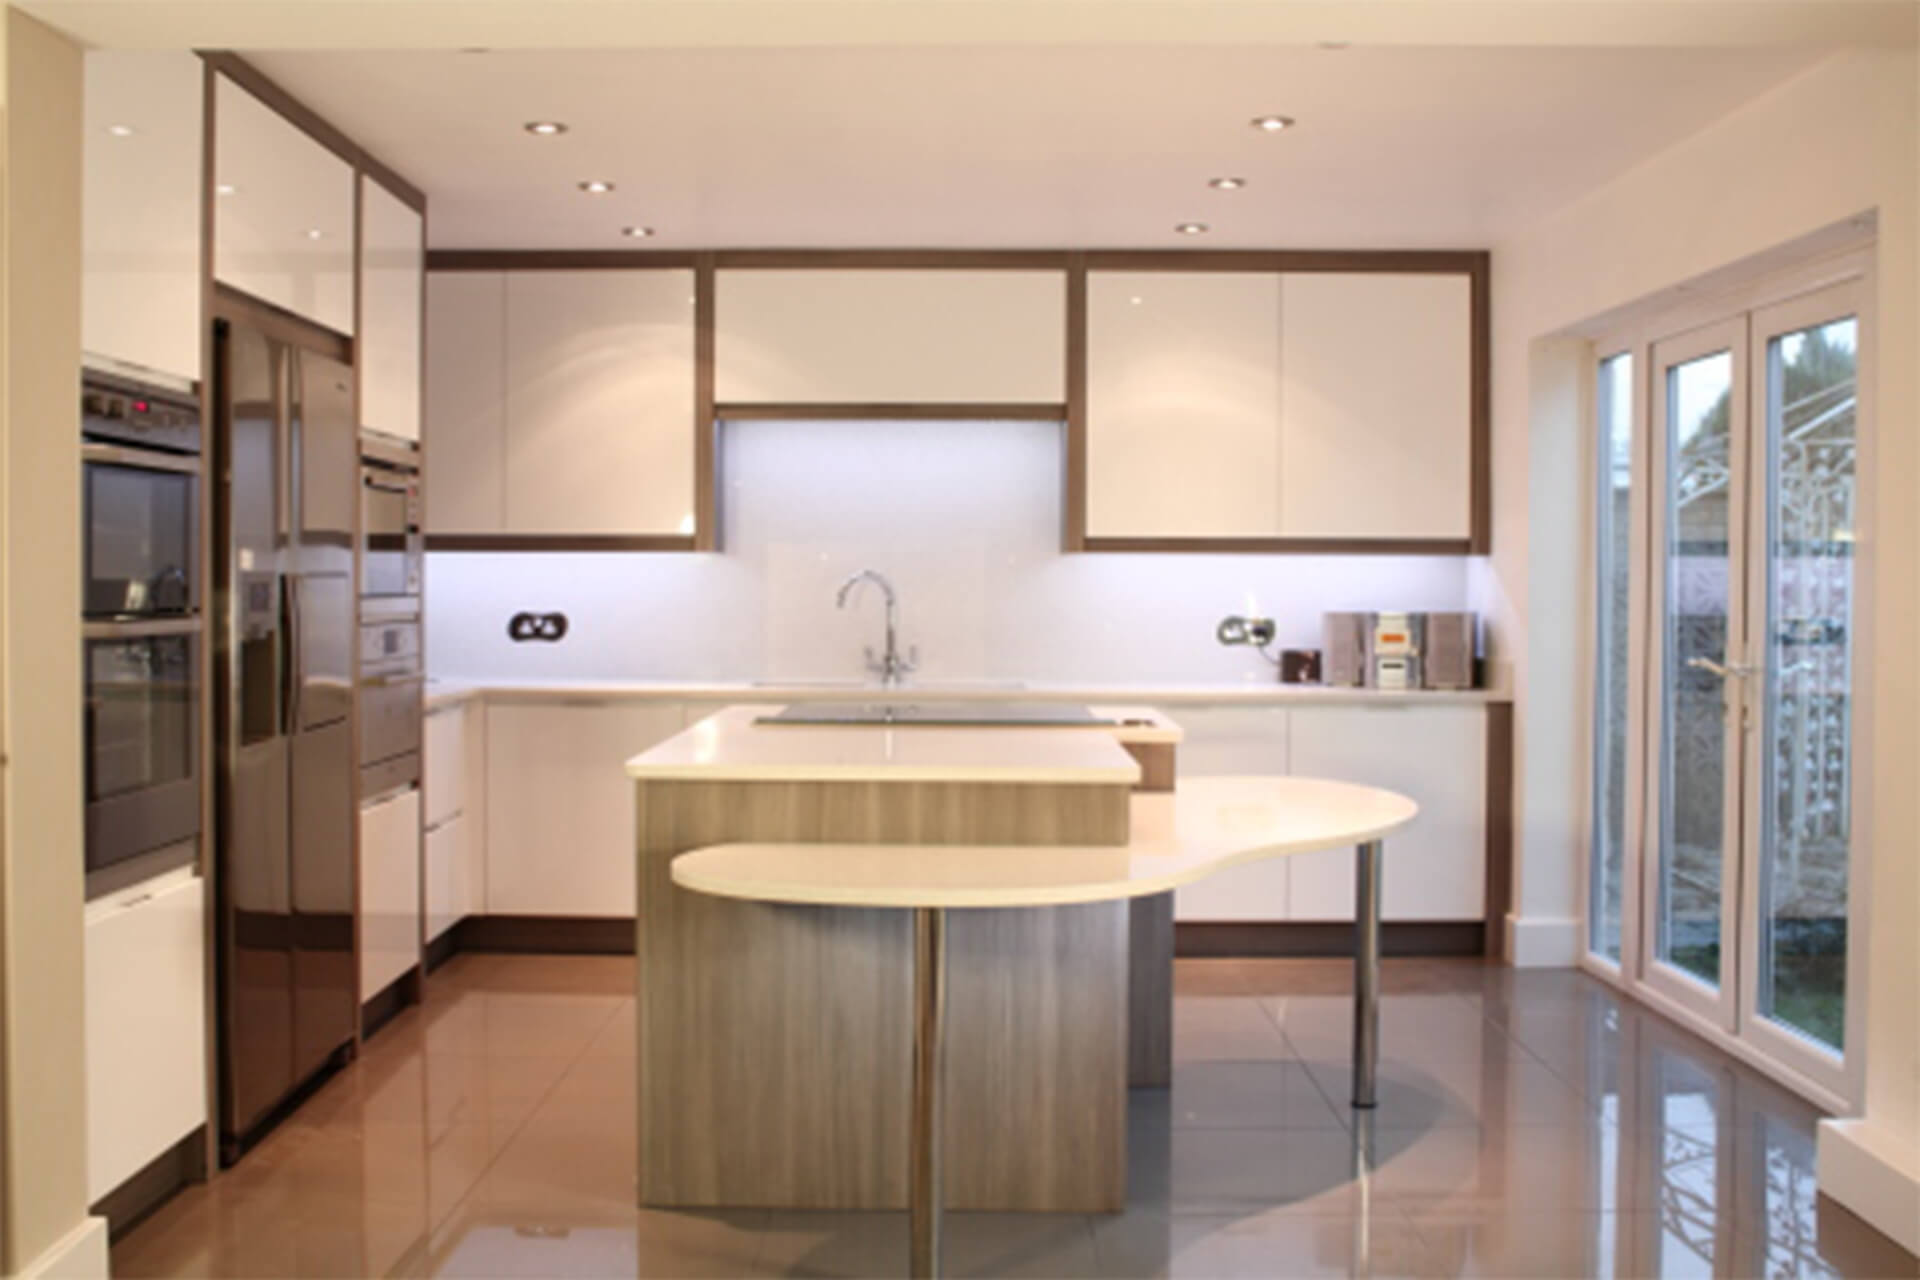 Gloss White - Slab Doors with Eular Carcase